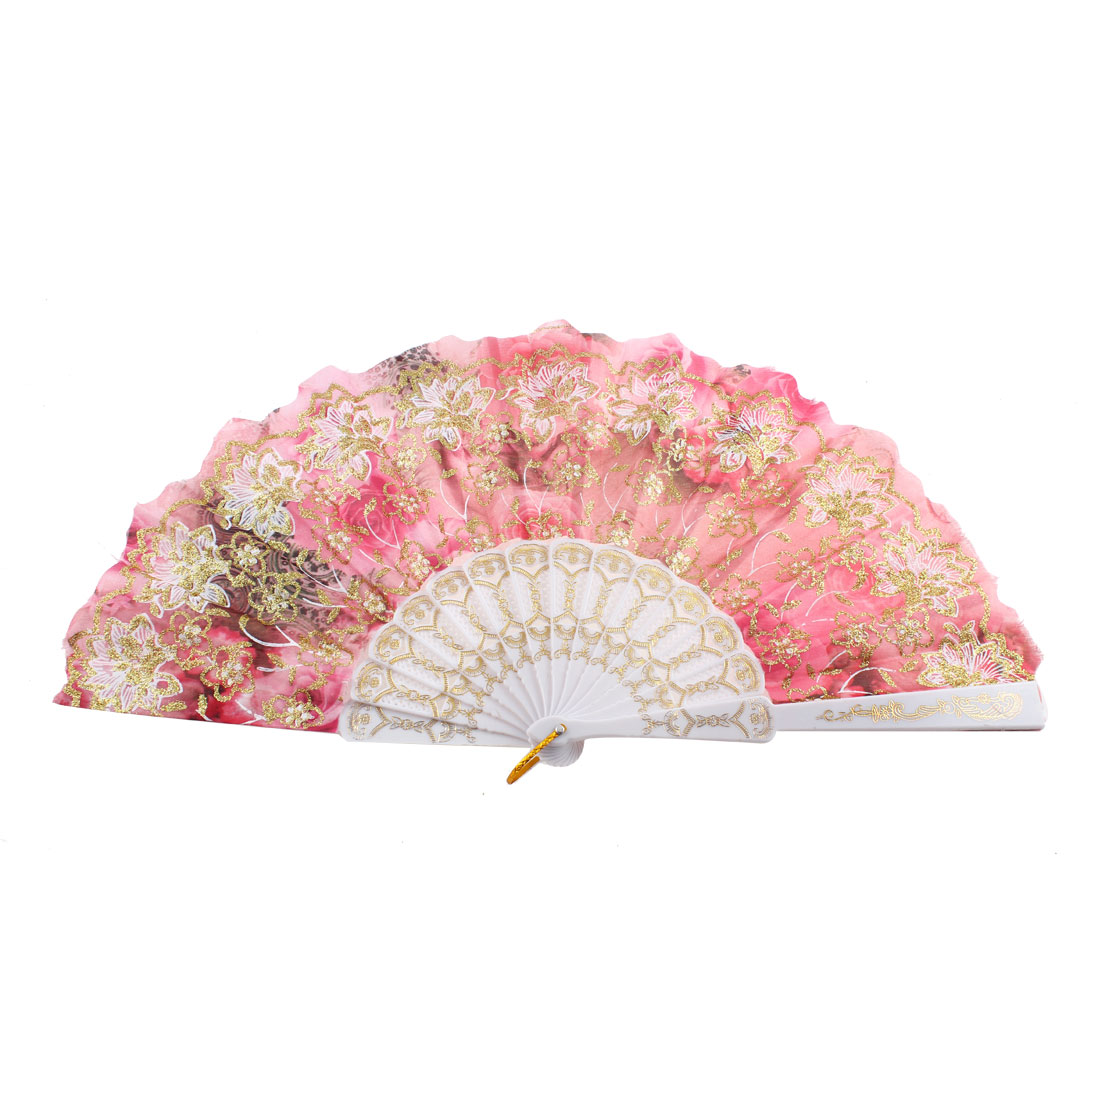 Hollow Out Ribs Glittery Powder Decor Flower Pattern Foldable Hand Fan Pink